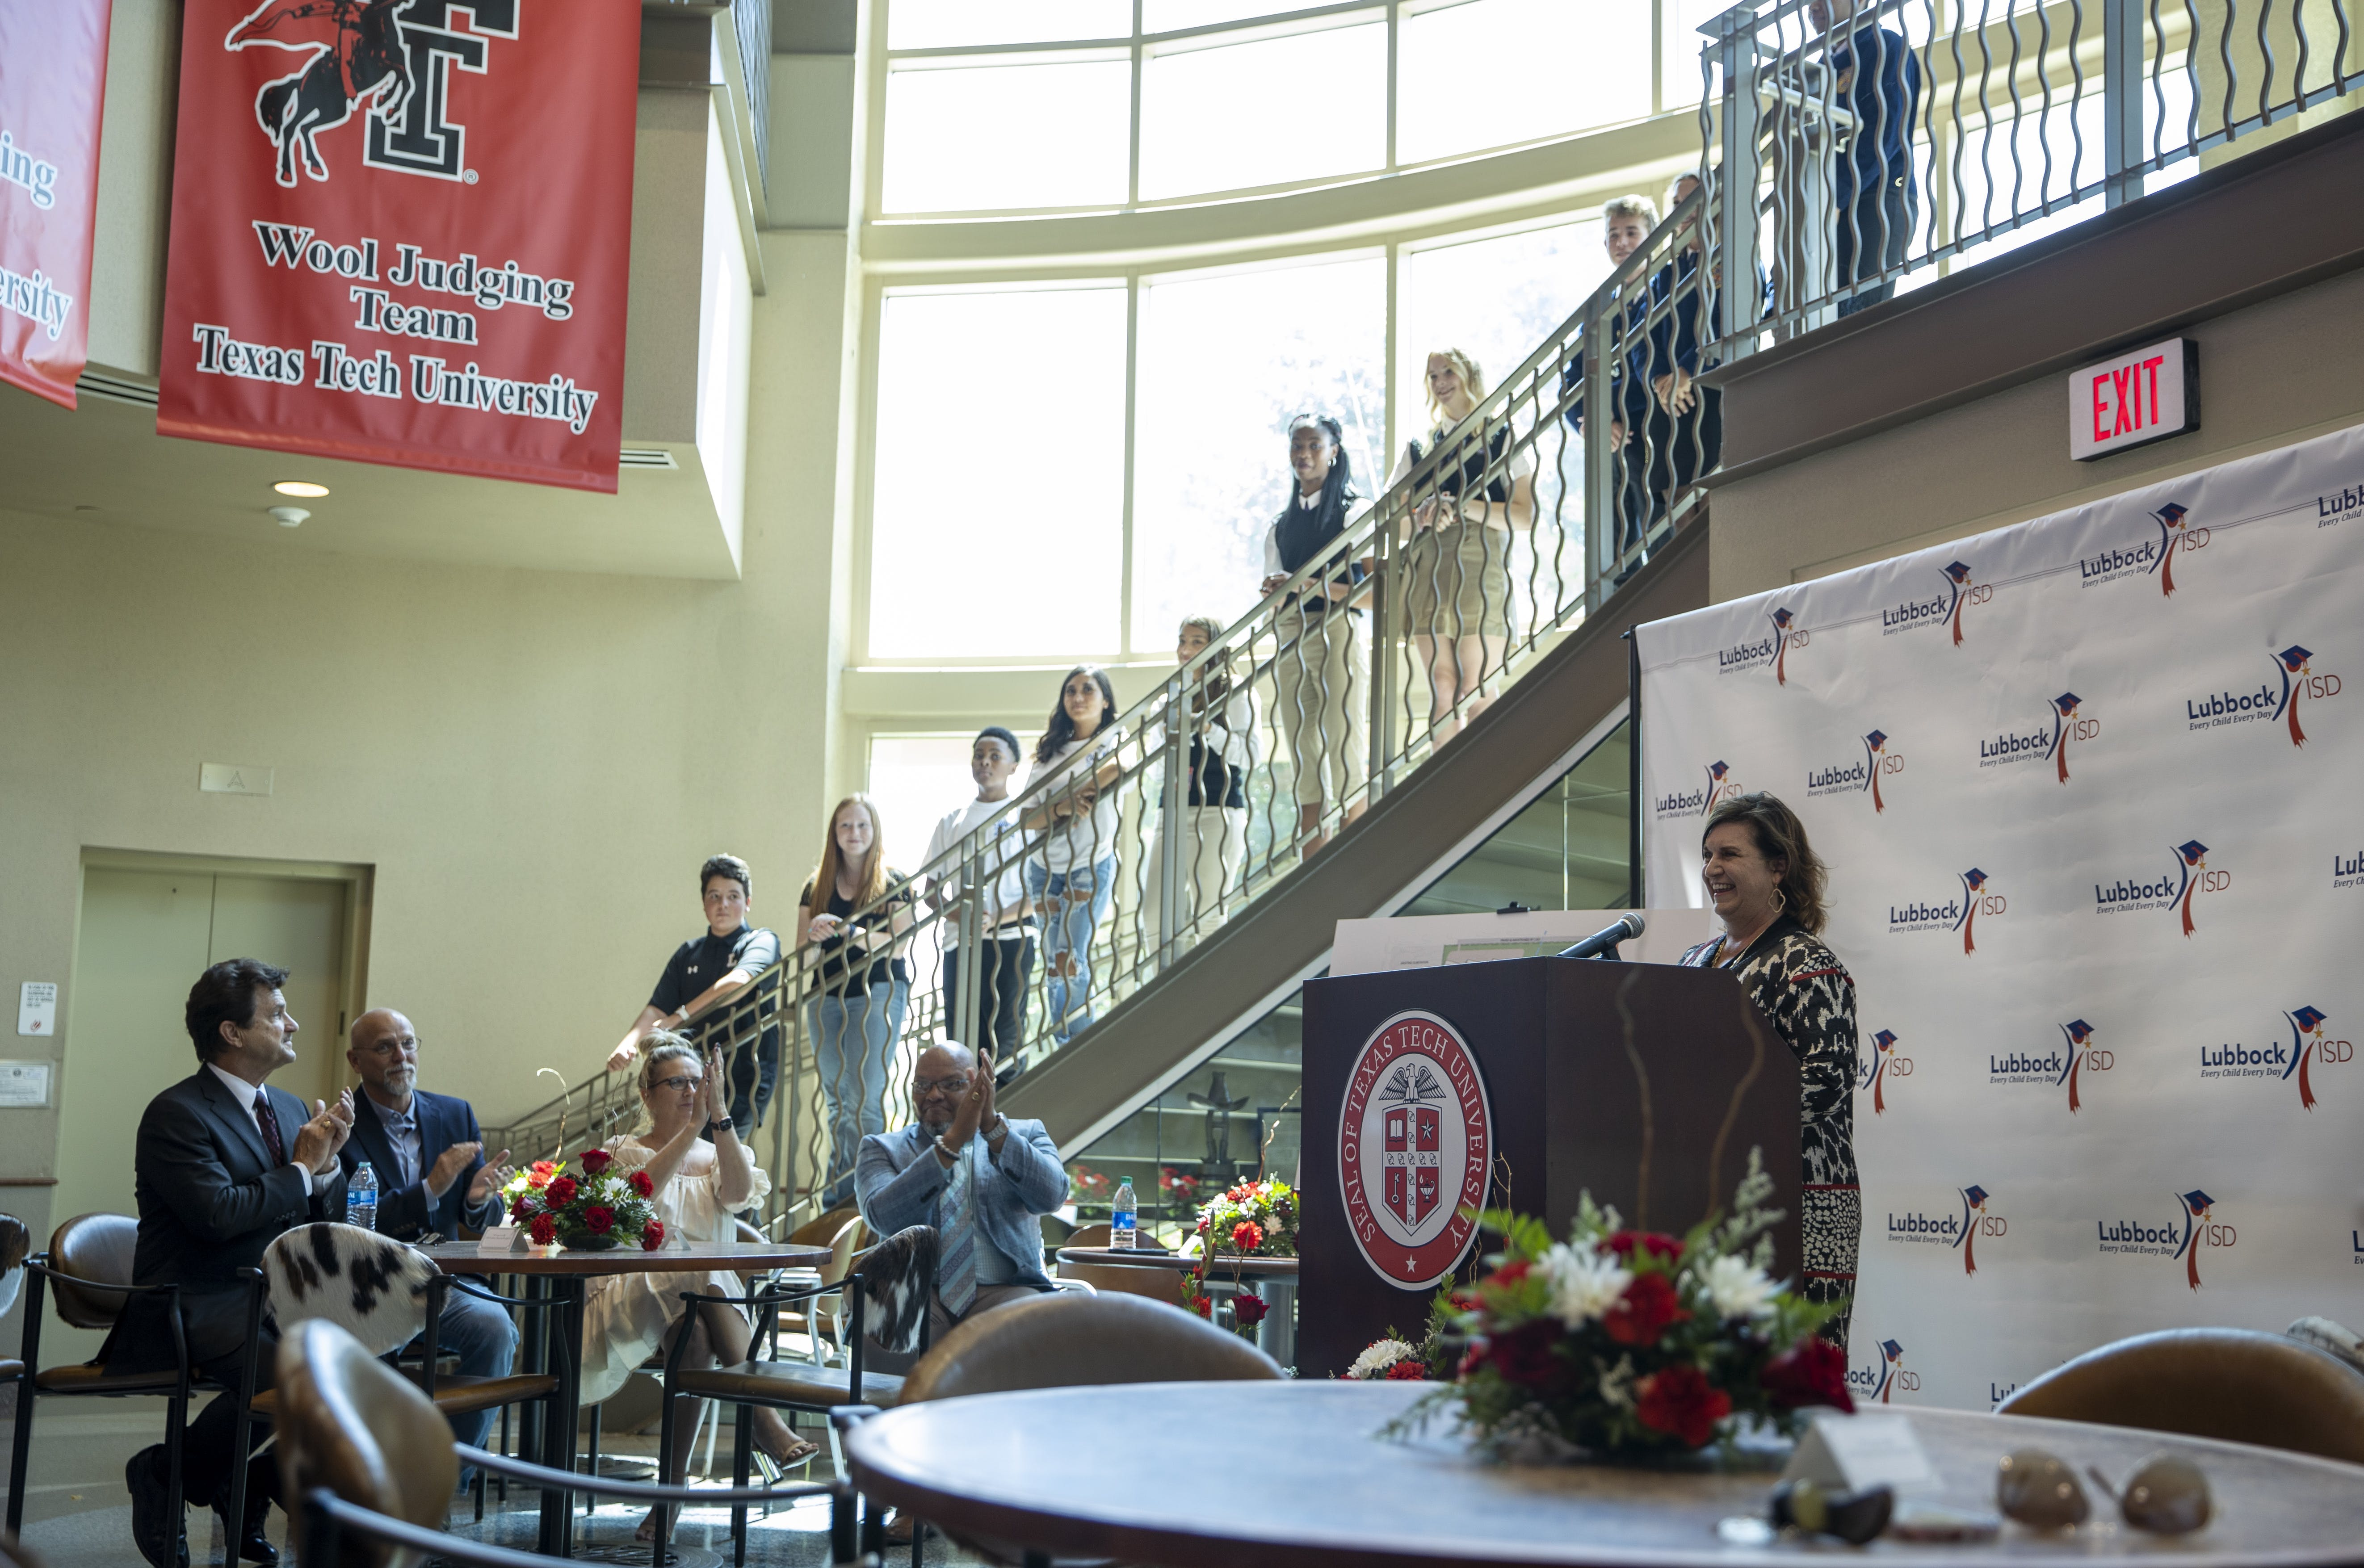 KCBD: Lubbock ISD, Texas Tech announce new Agri-STEM building for Lubbock students cover image